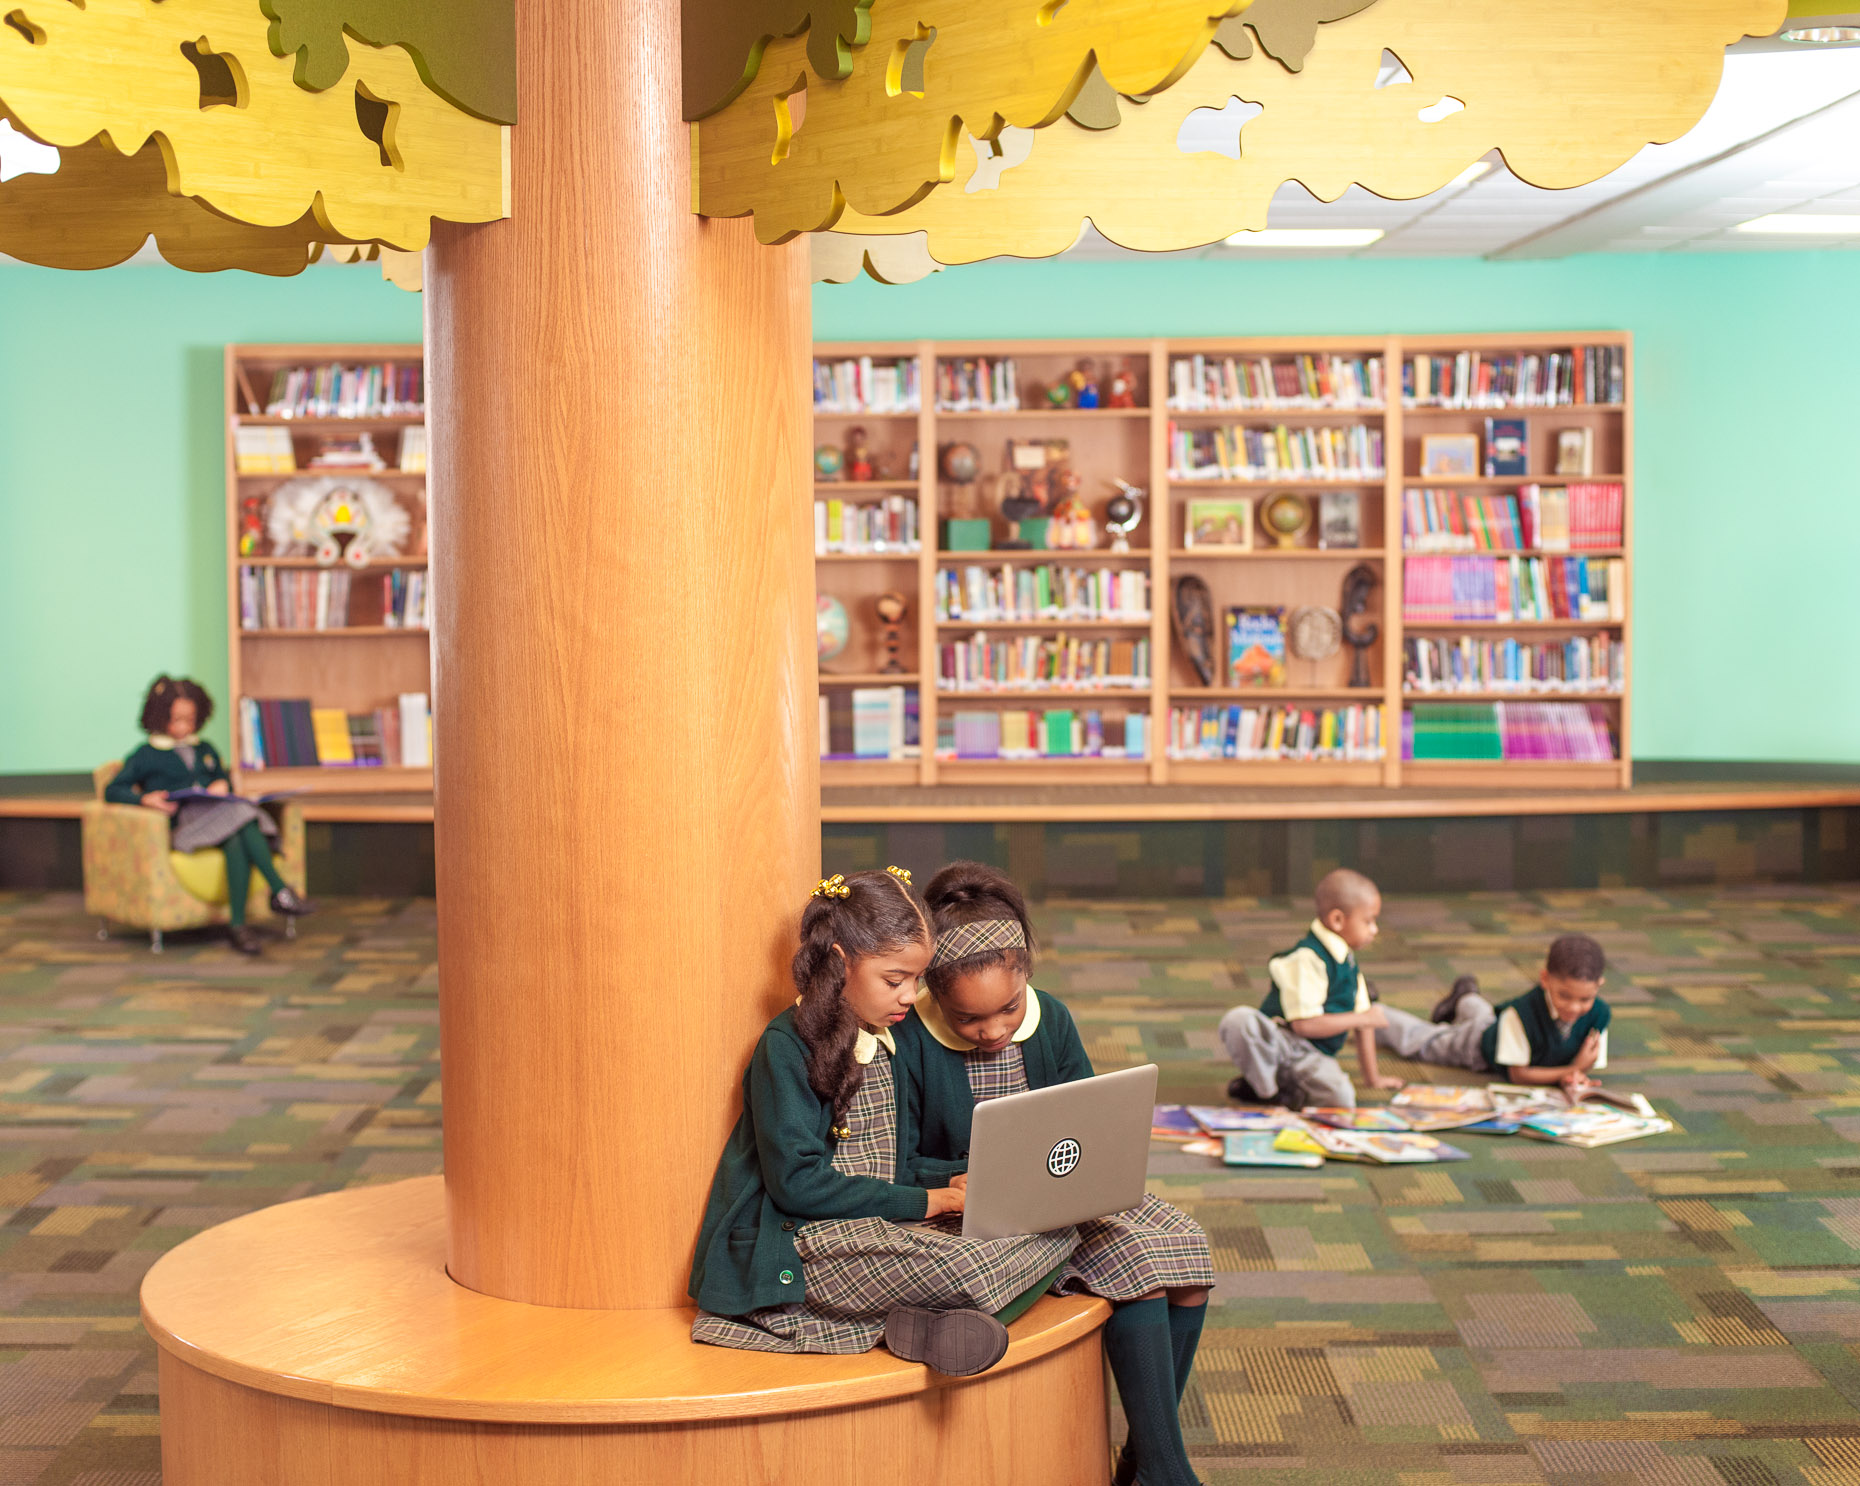 commercial-advertising-library-kids-education